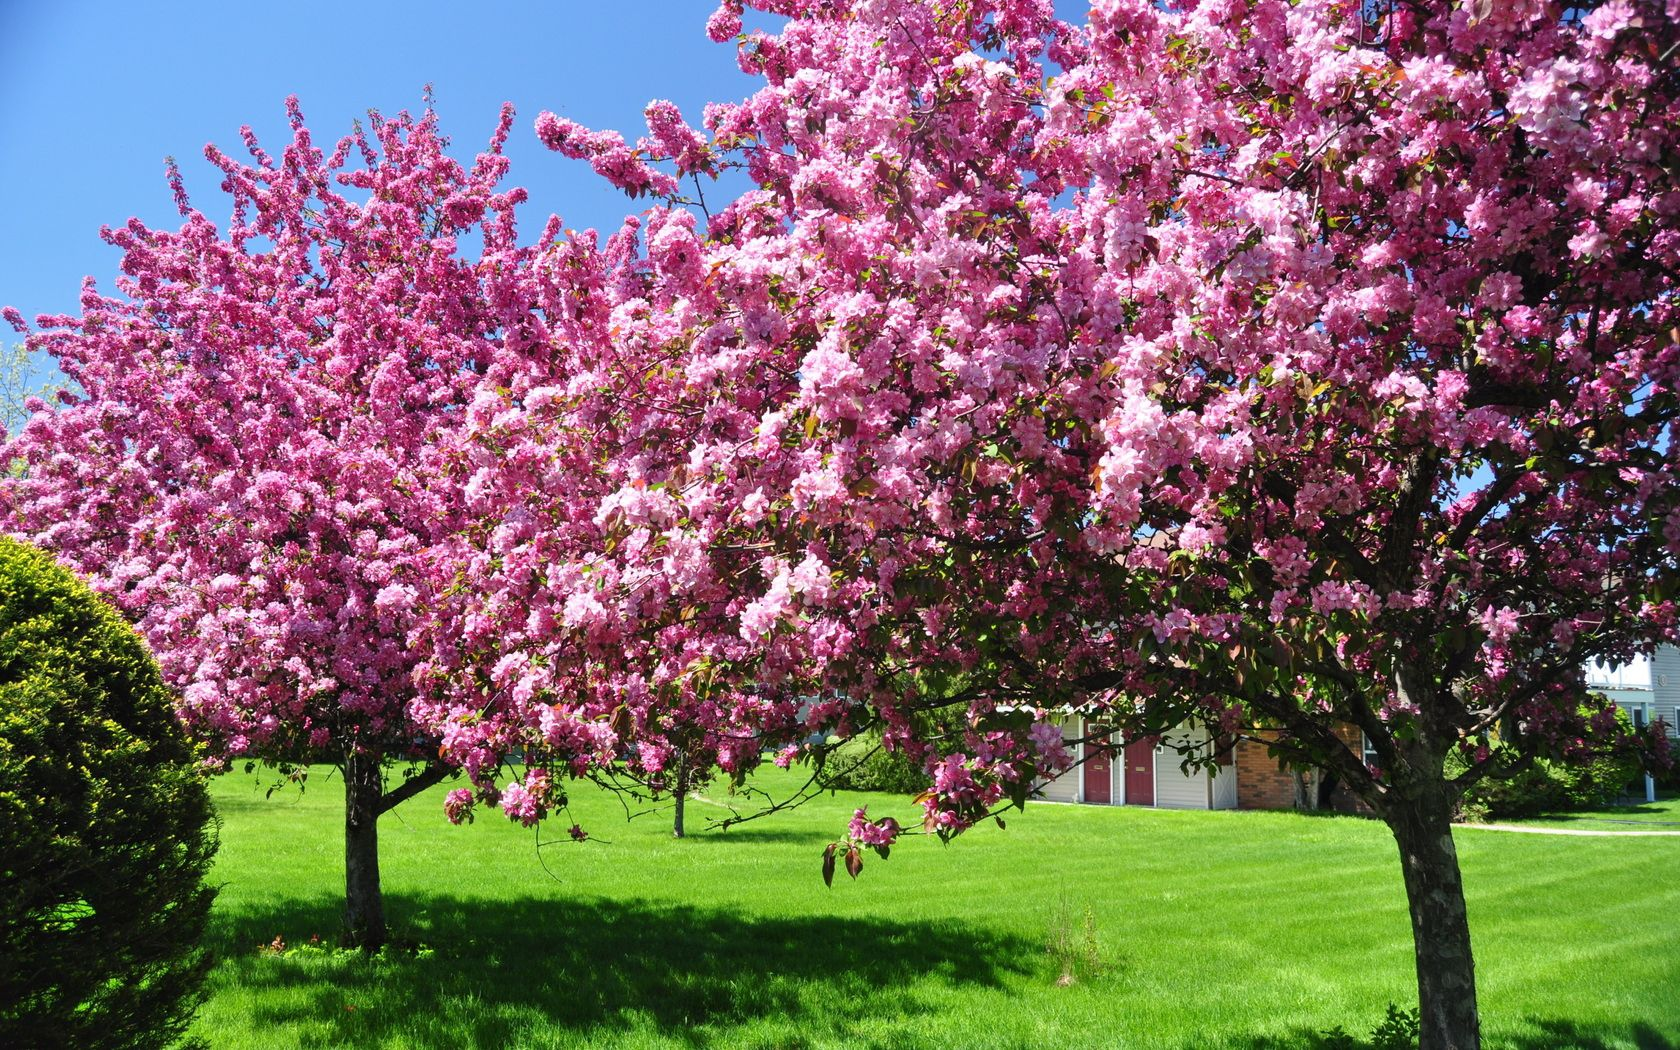 81102 free wallpaper 1080x2400 for phone, download images Nature, Trees, Pink, Garden, Spring, Courtyard, Yard, Blooming, Blossoming 1080x2400 for mobile